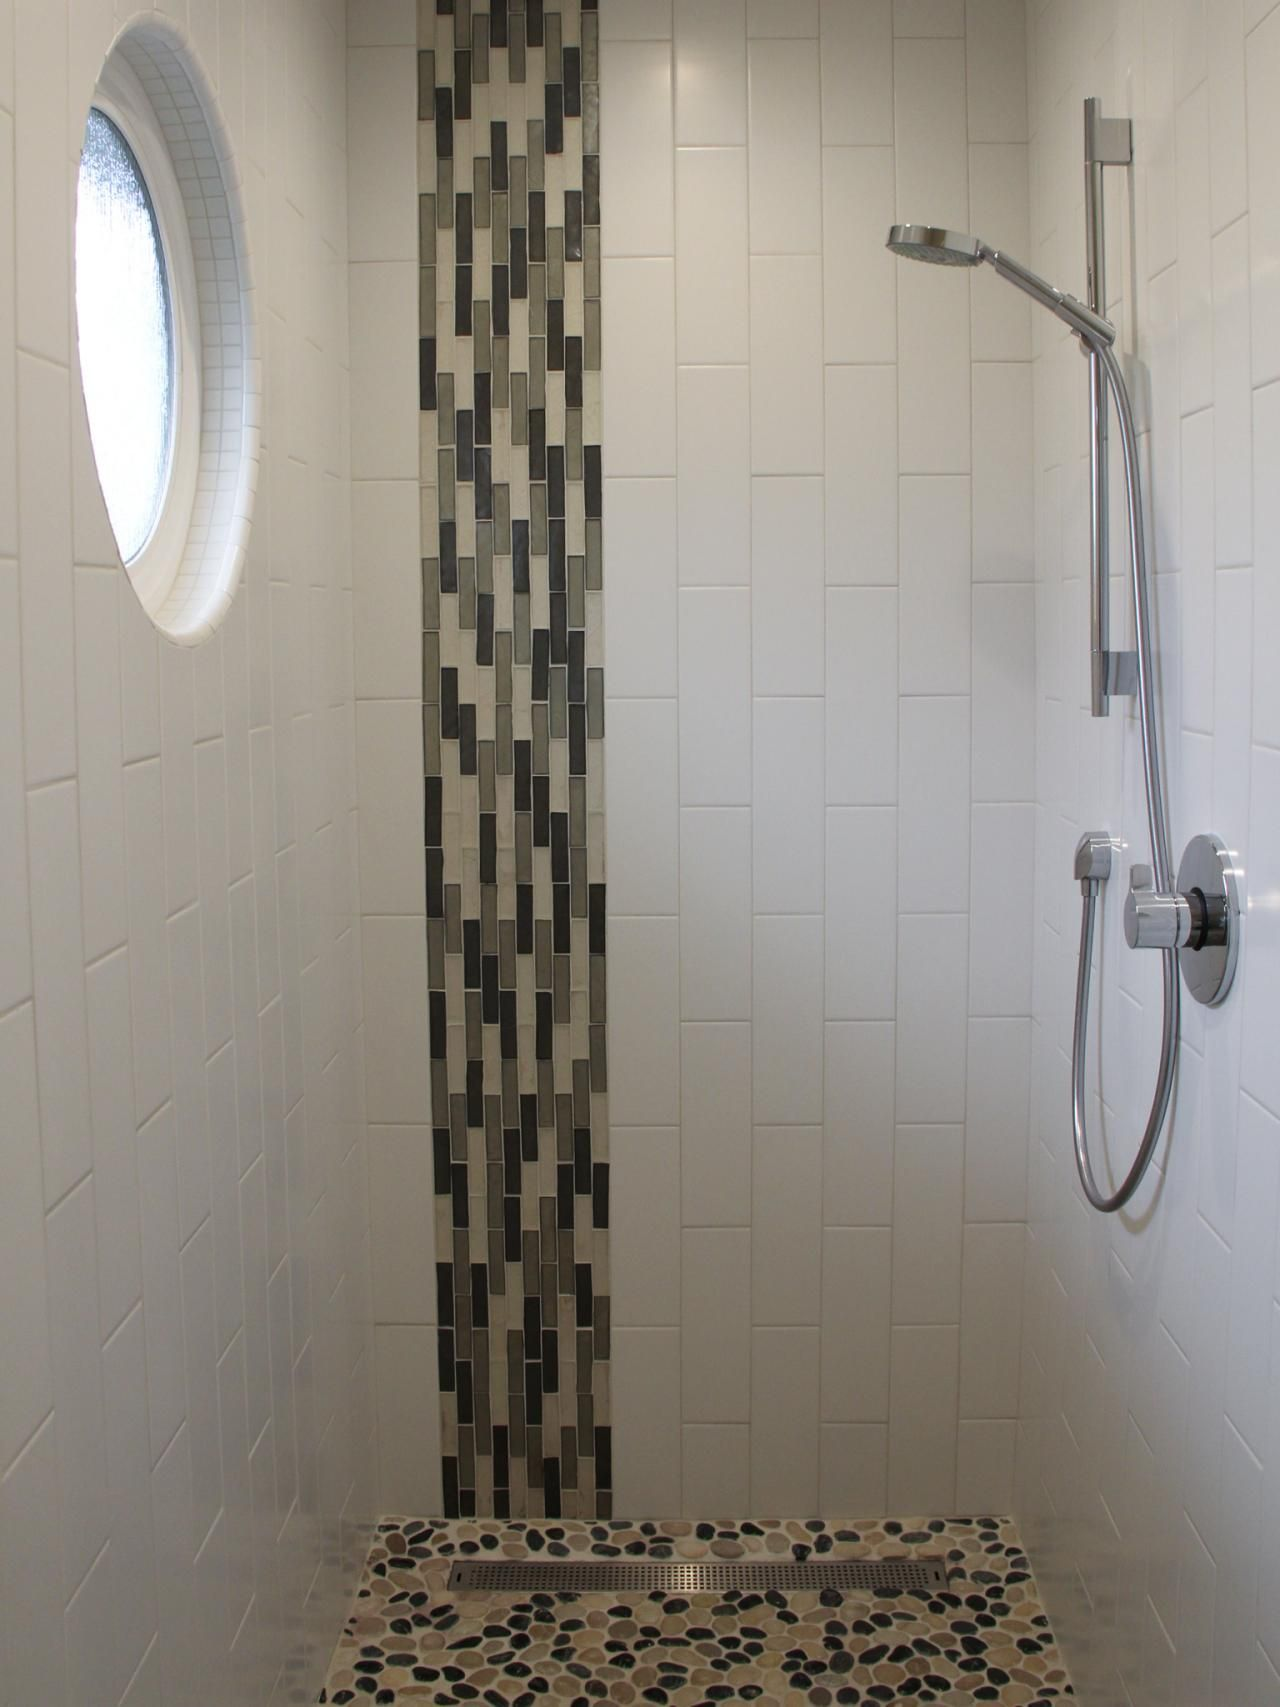 The vertical mosaic glass tile combined with the vertical for Mosaic tile bathroom design